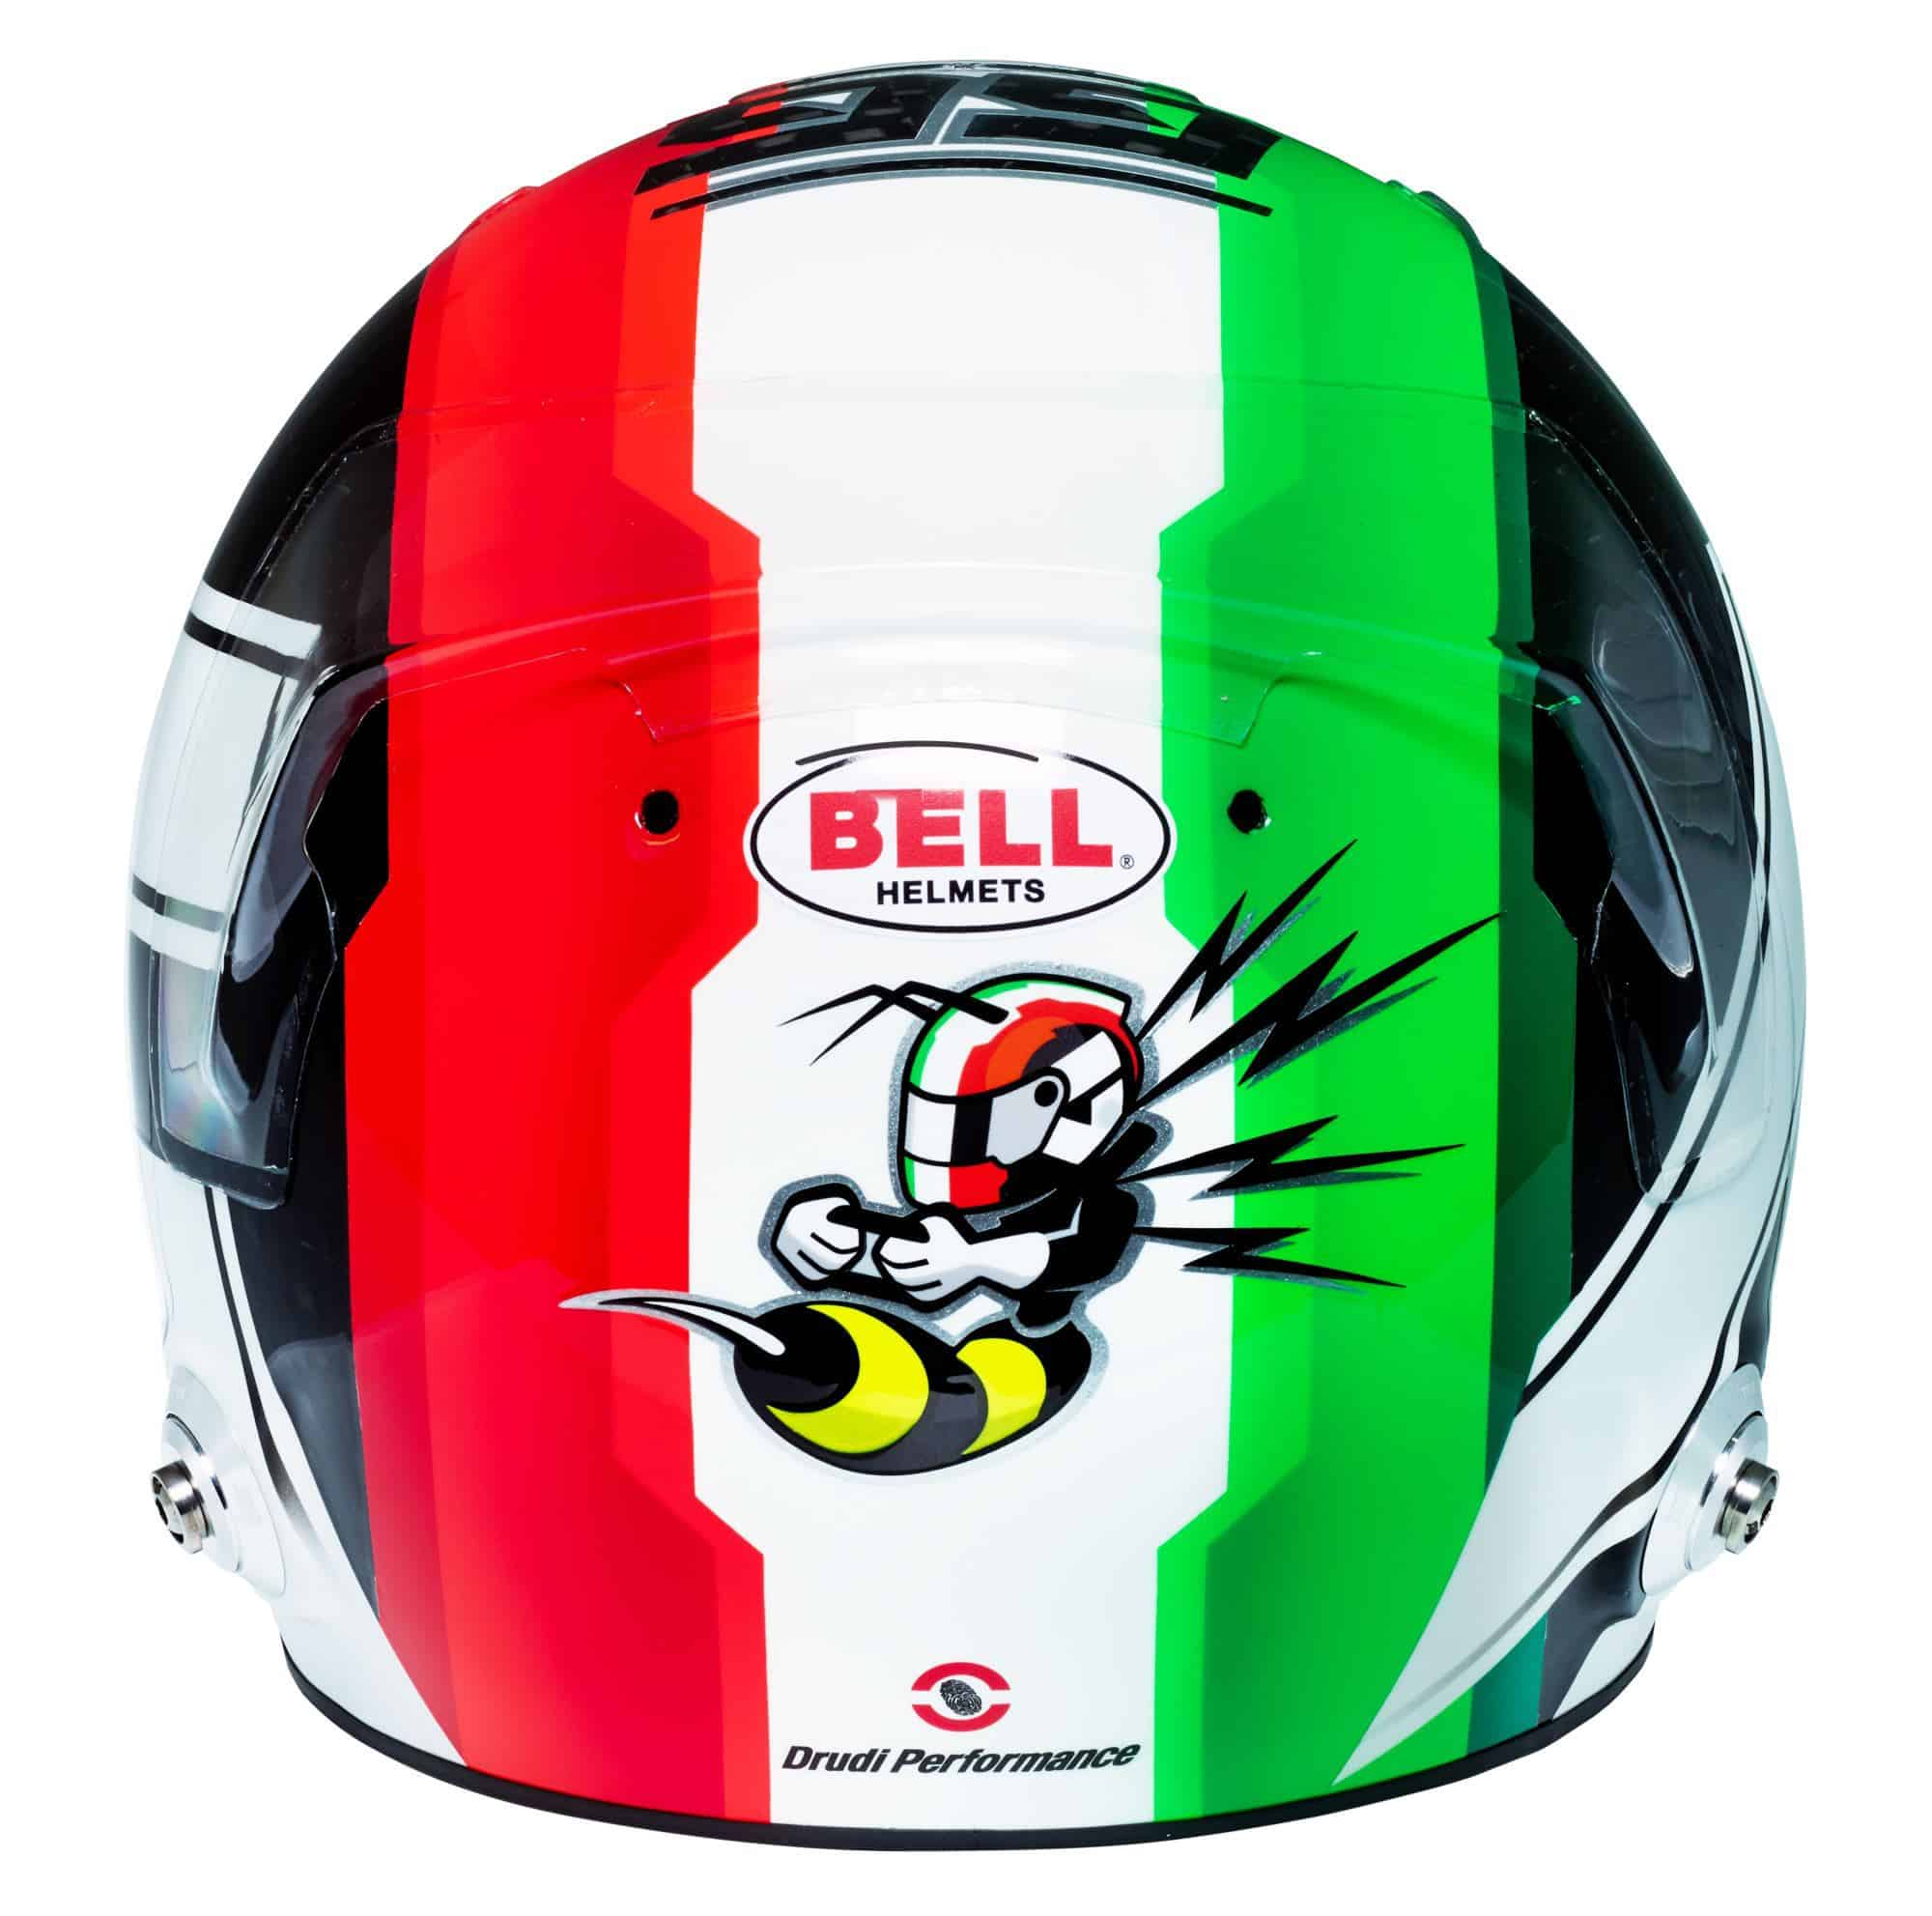 Antonio Giovinazzi 2019 F1 helmet Alfa Romeo Racing rear Photo Alfa Romeo Edited by MAXF1net